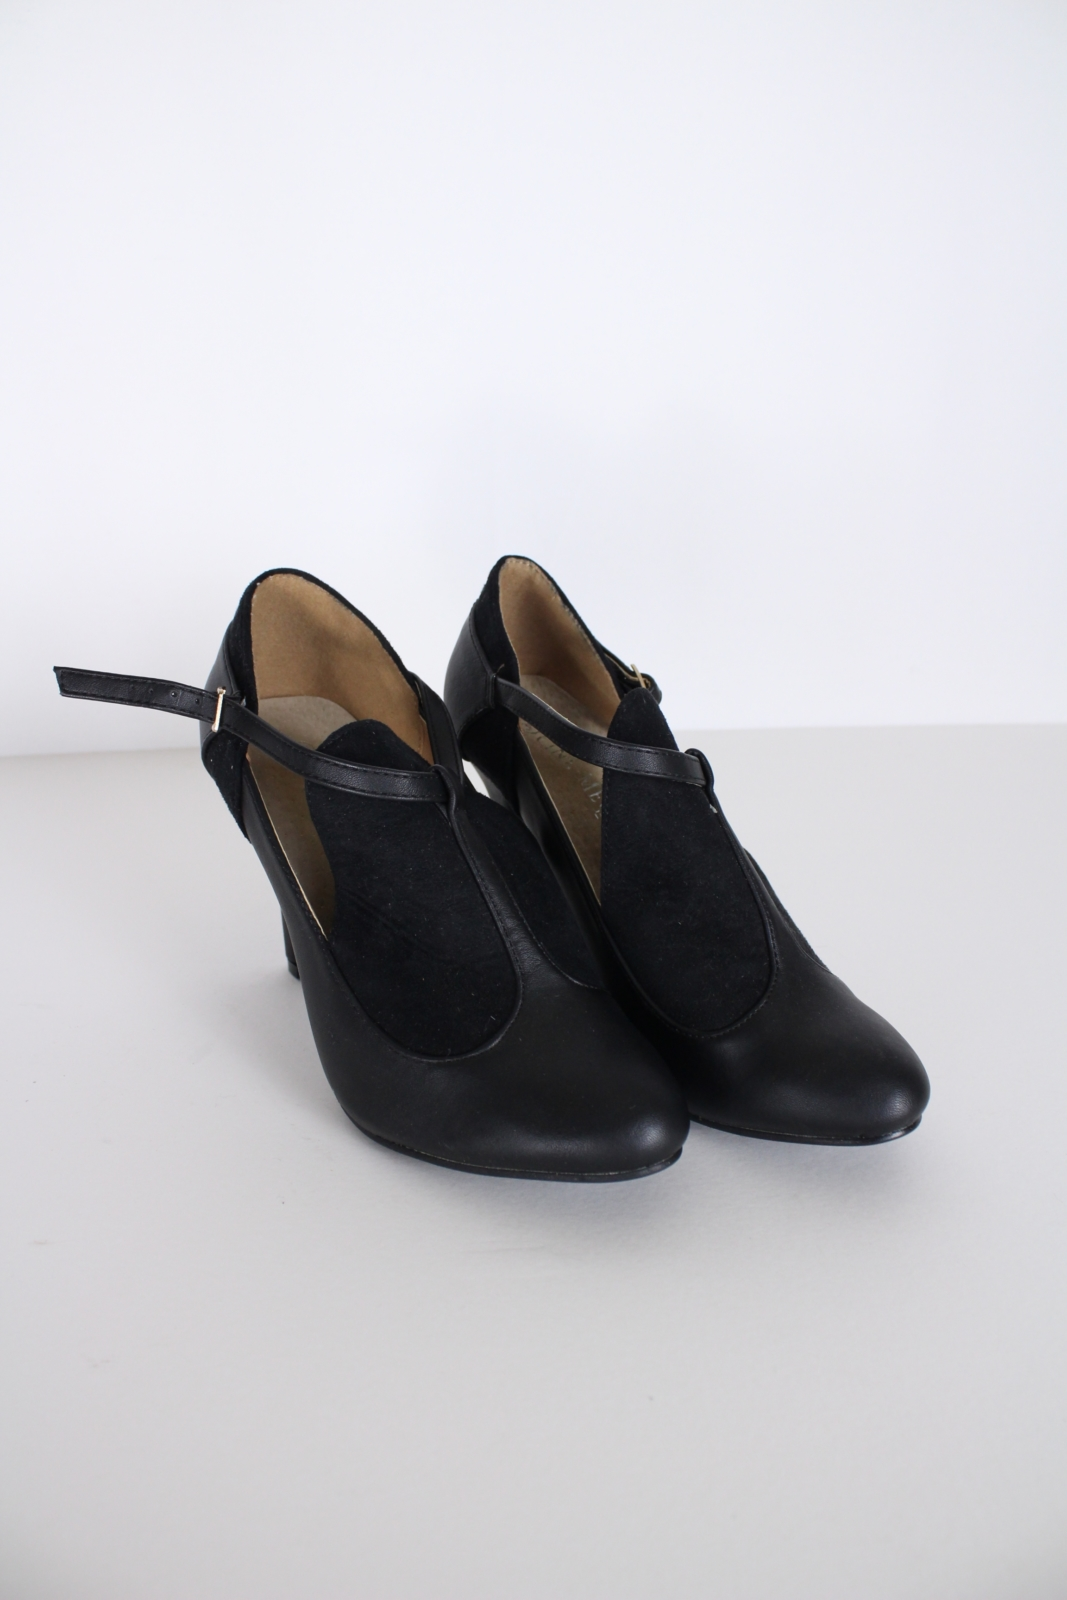 Second-hand Clothing - Sale, Women, Shoes, Heels, Second-Hand Clothing